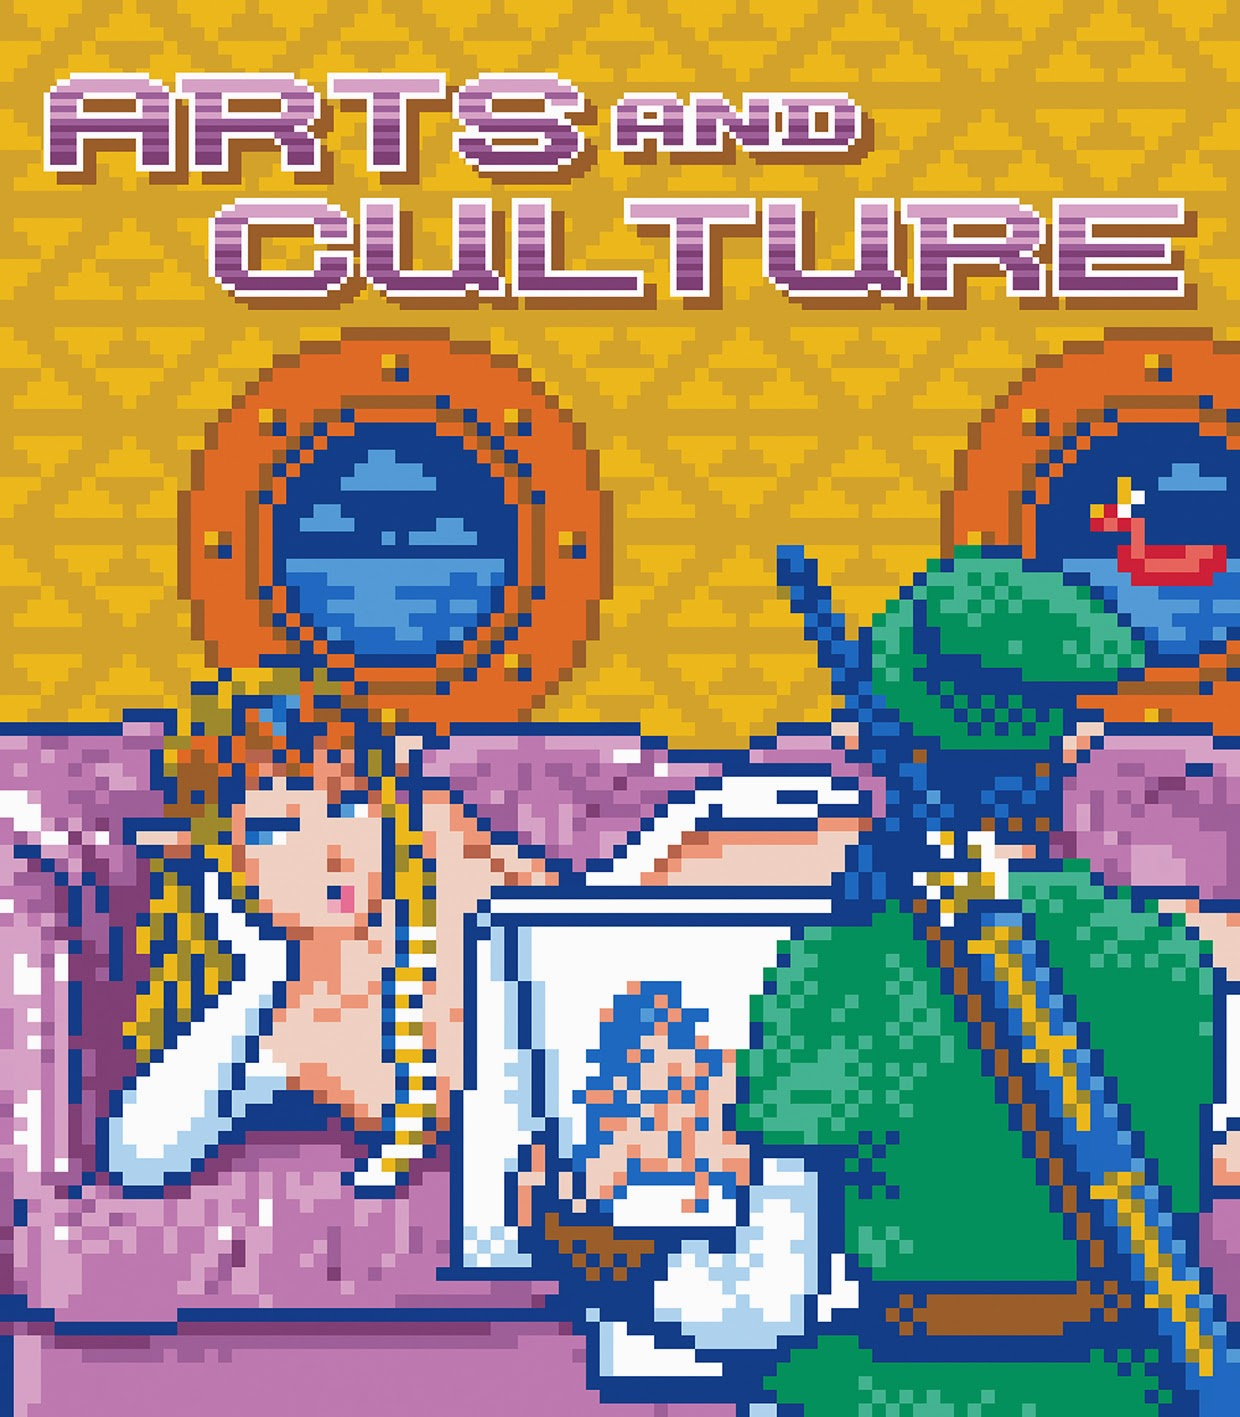 zelda pixel retro game paint me like your french bitches